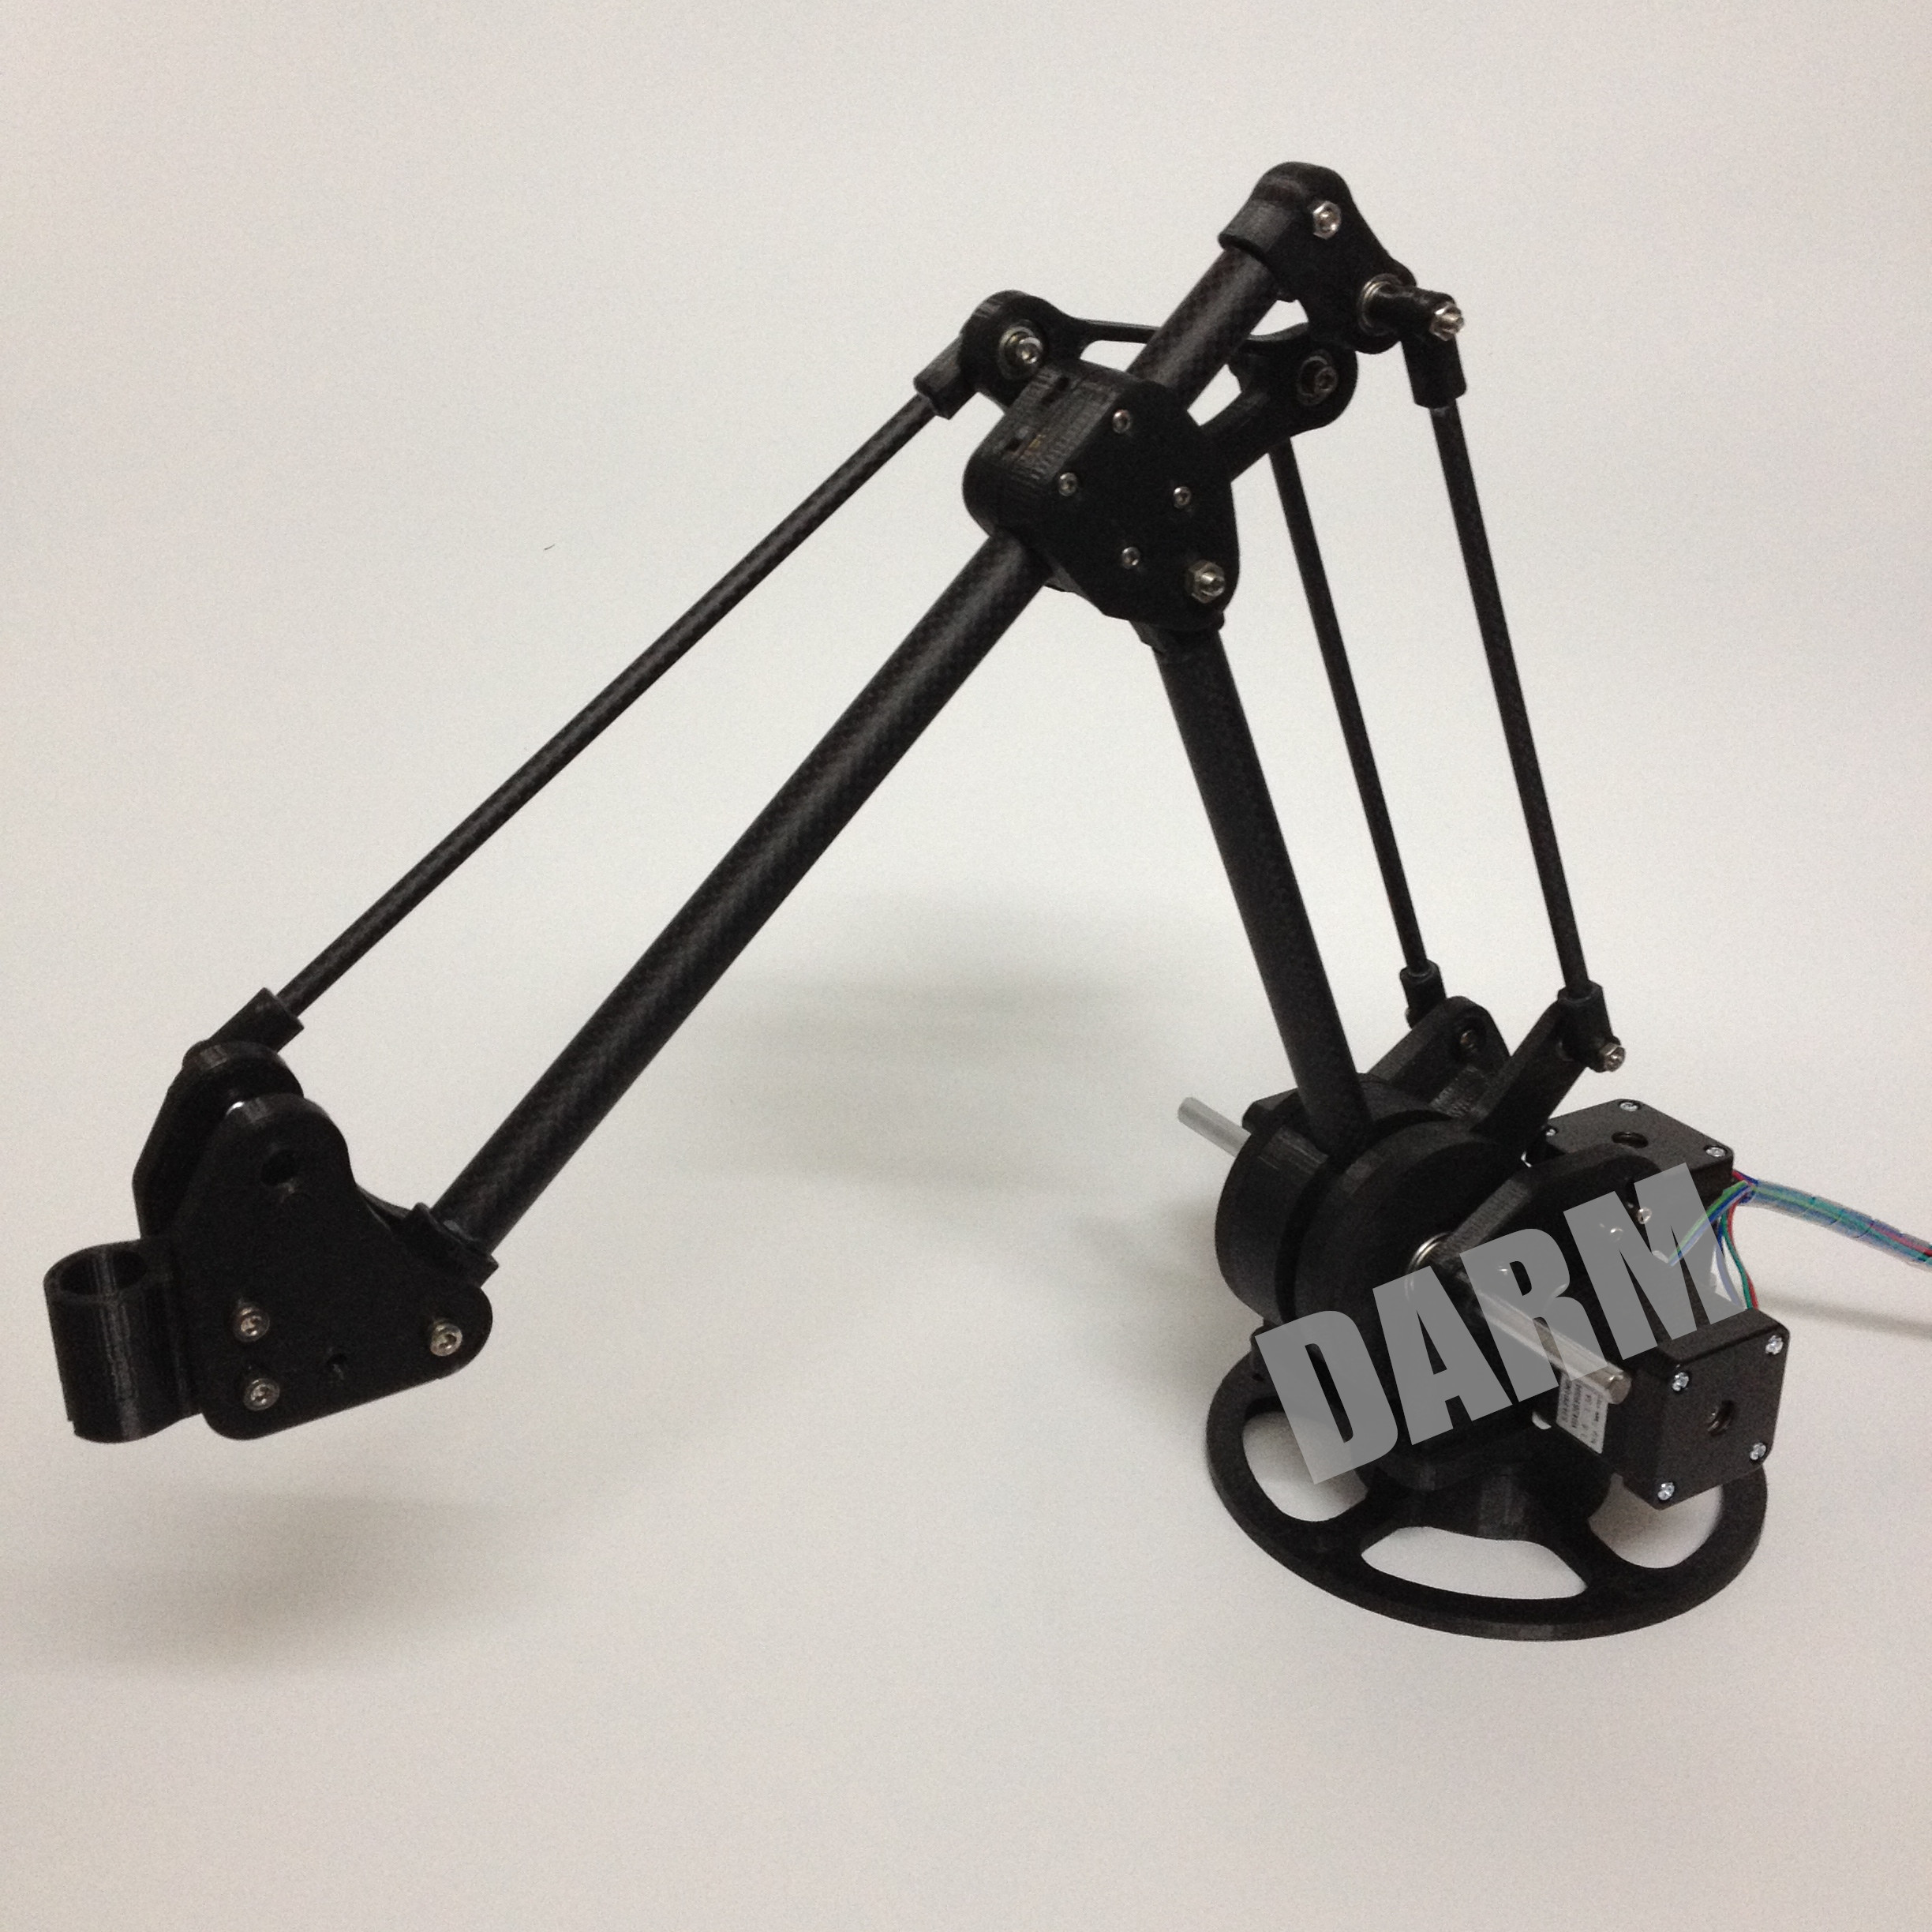 3d print desktop robot arm(DARM) by seagull008 - Thingiverse